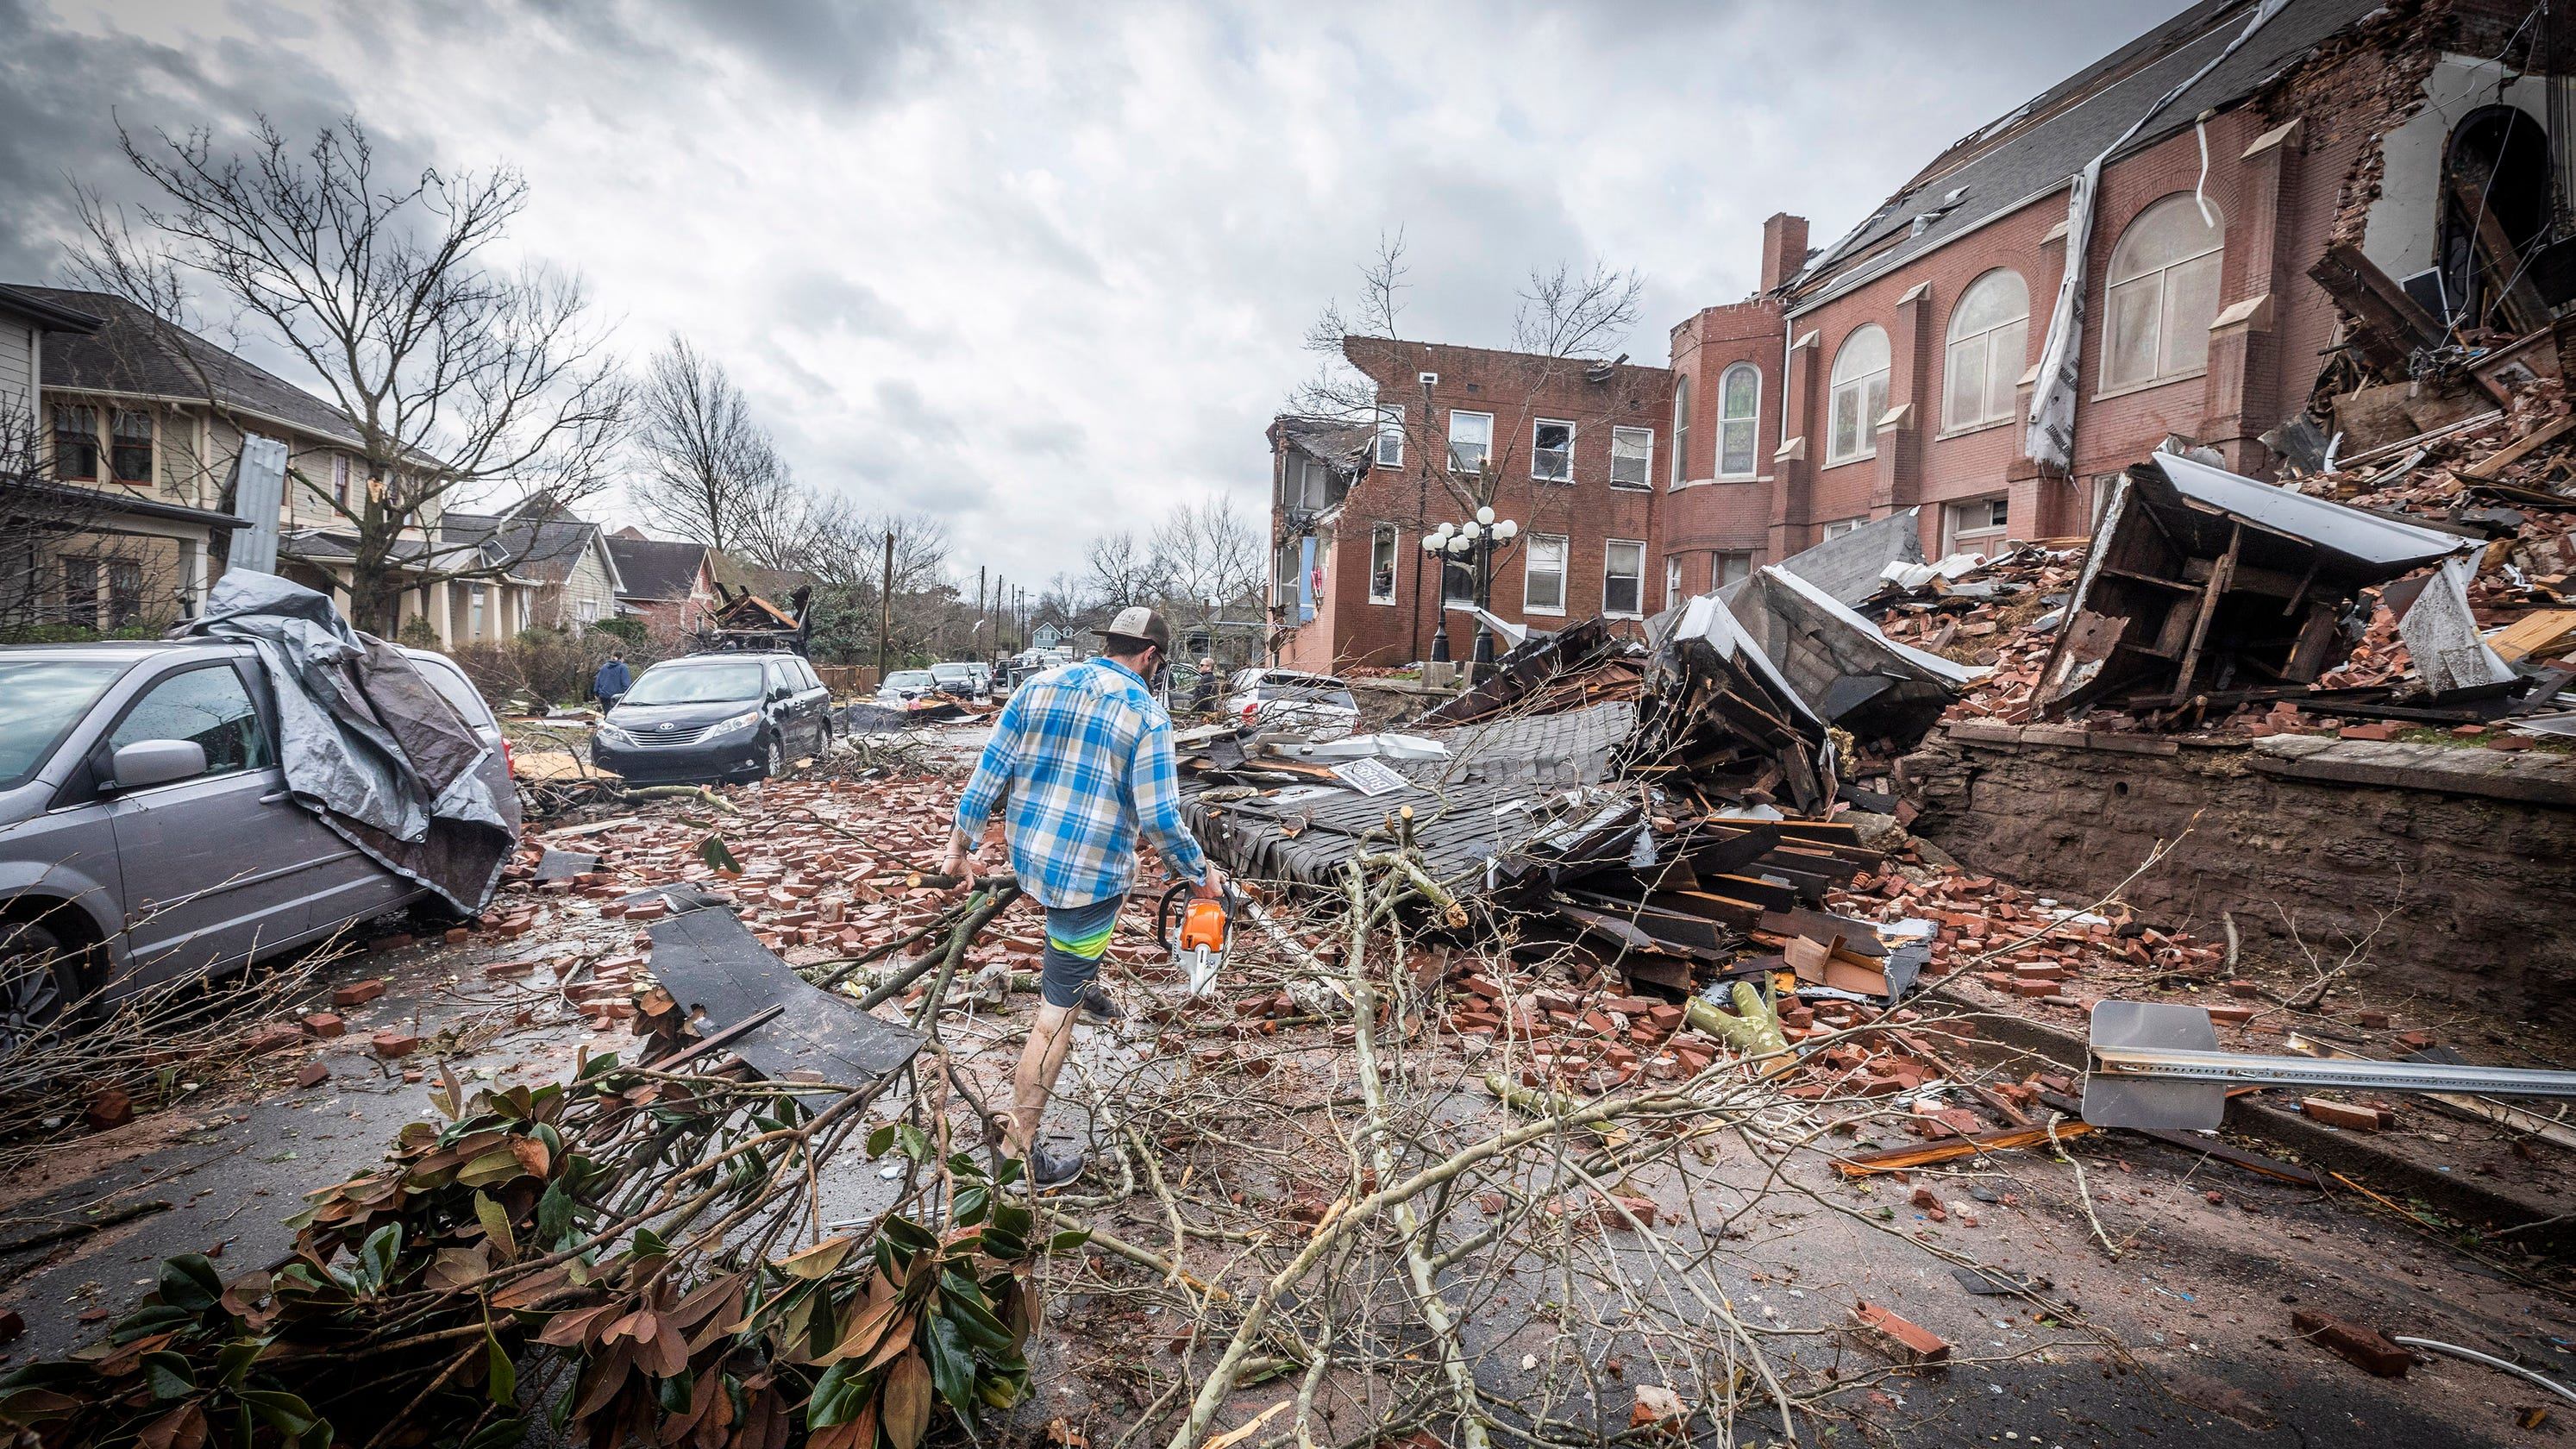 'A very active and devastating year': Tennessee had 35 tornadoes in 2020, NWS says